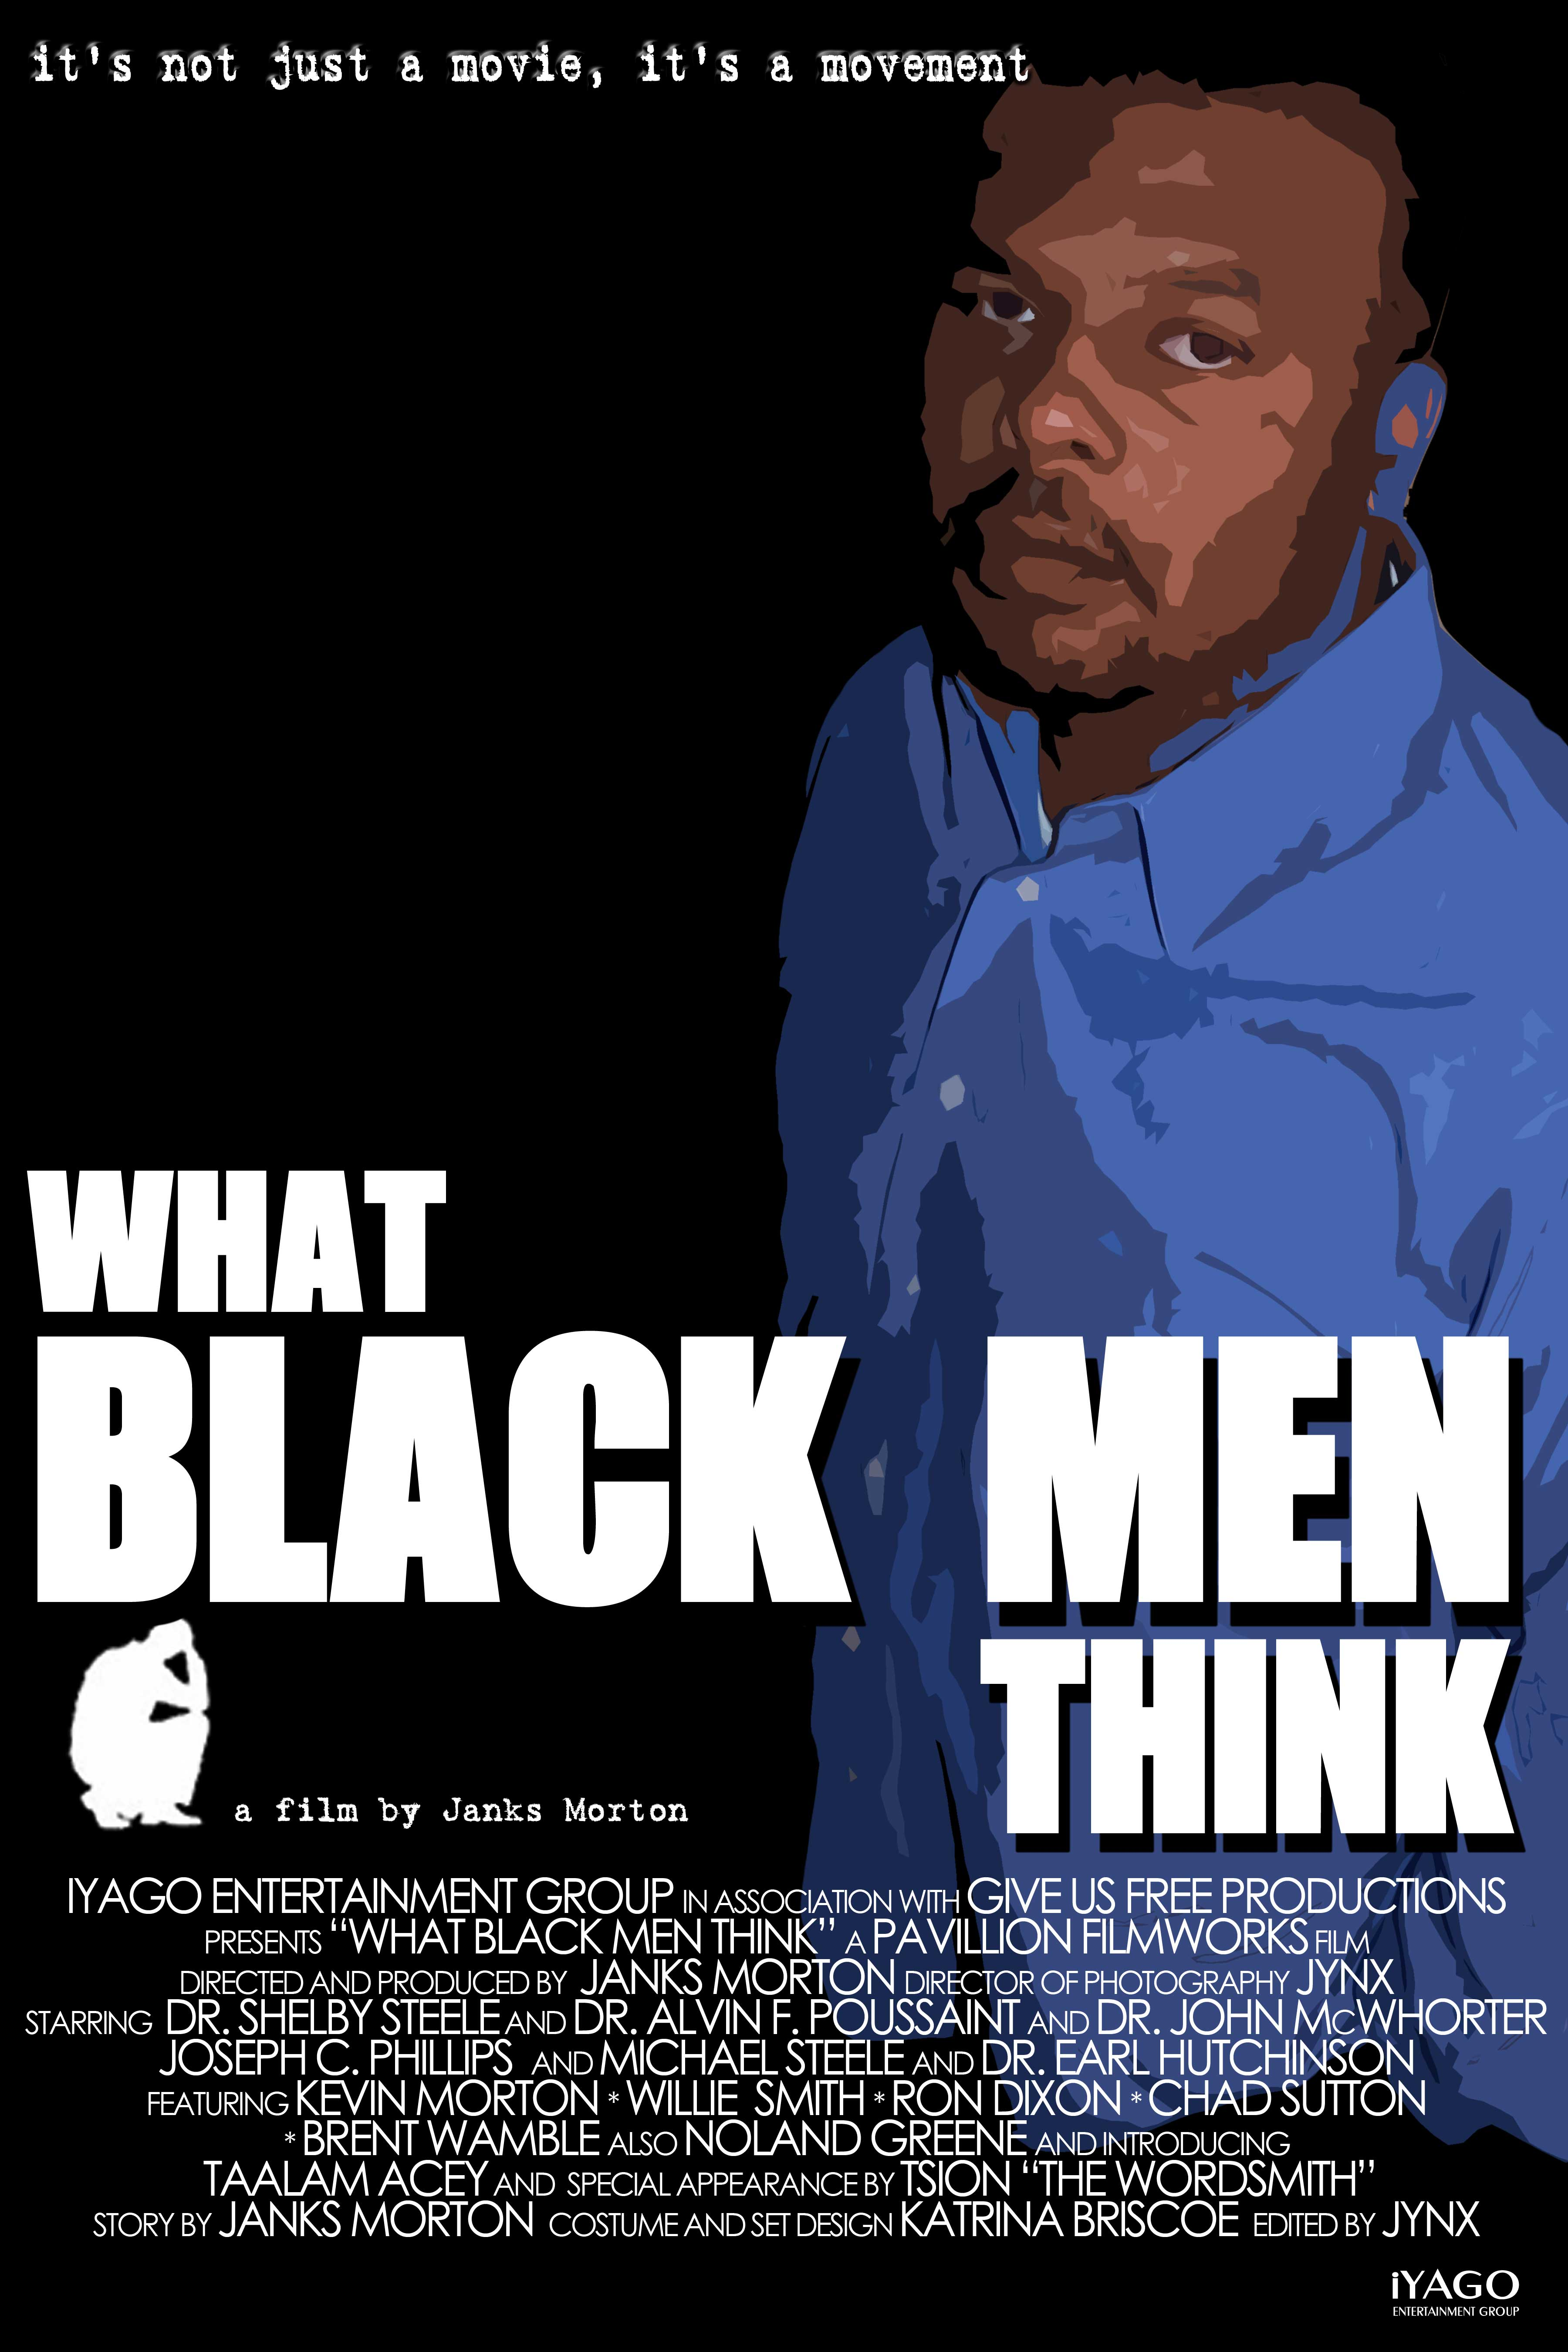 What Black Men Think documentary Janks Morgan